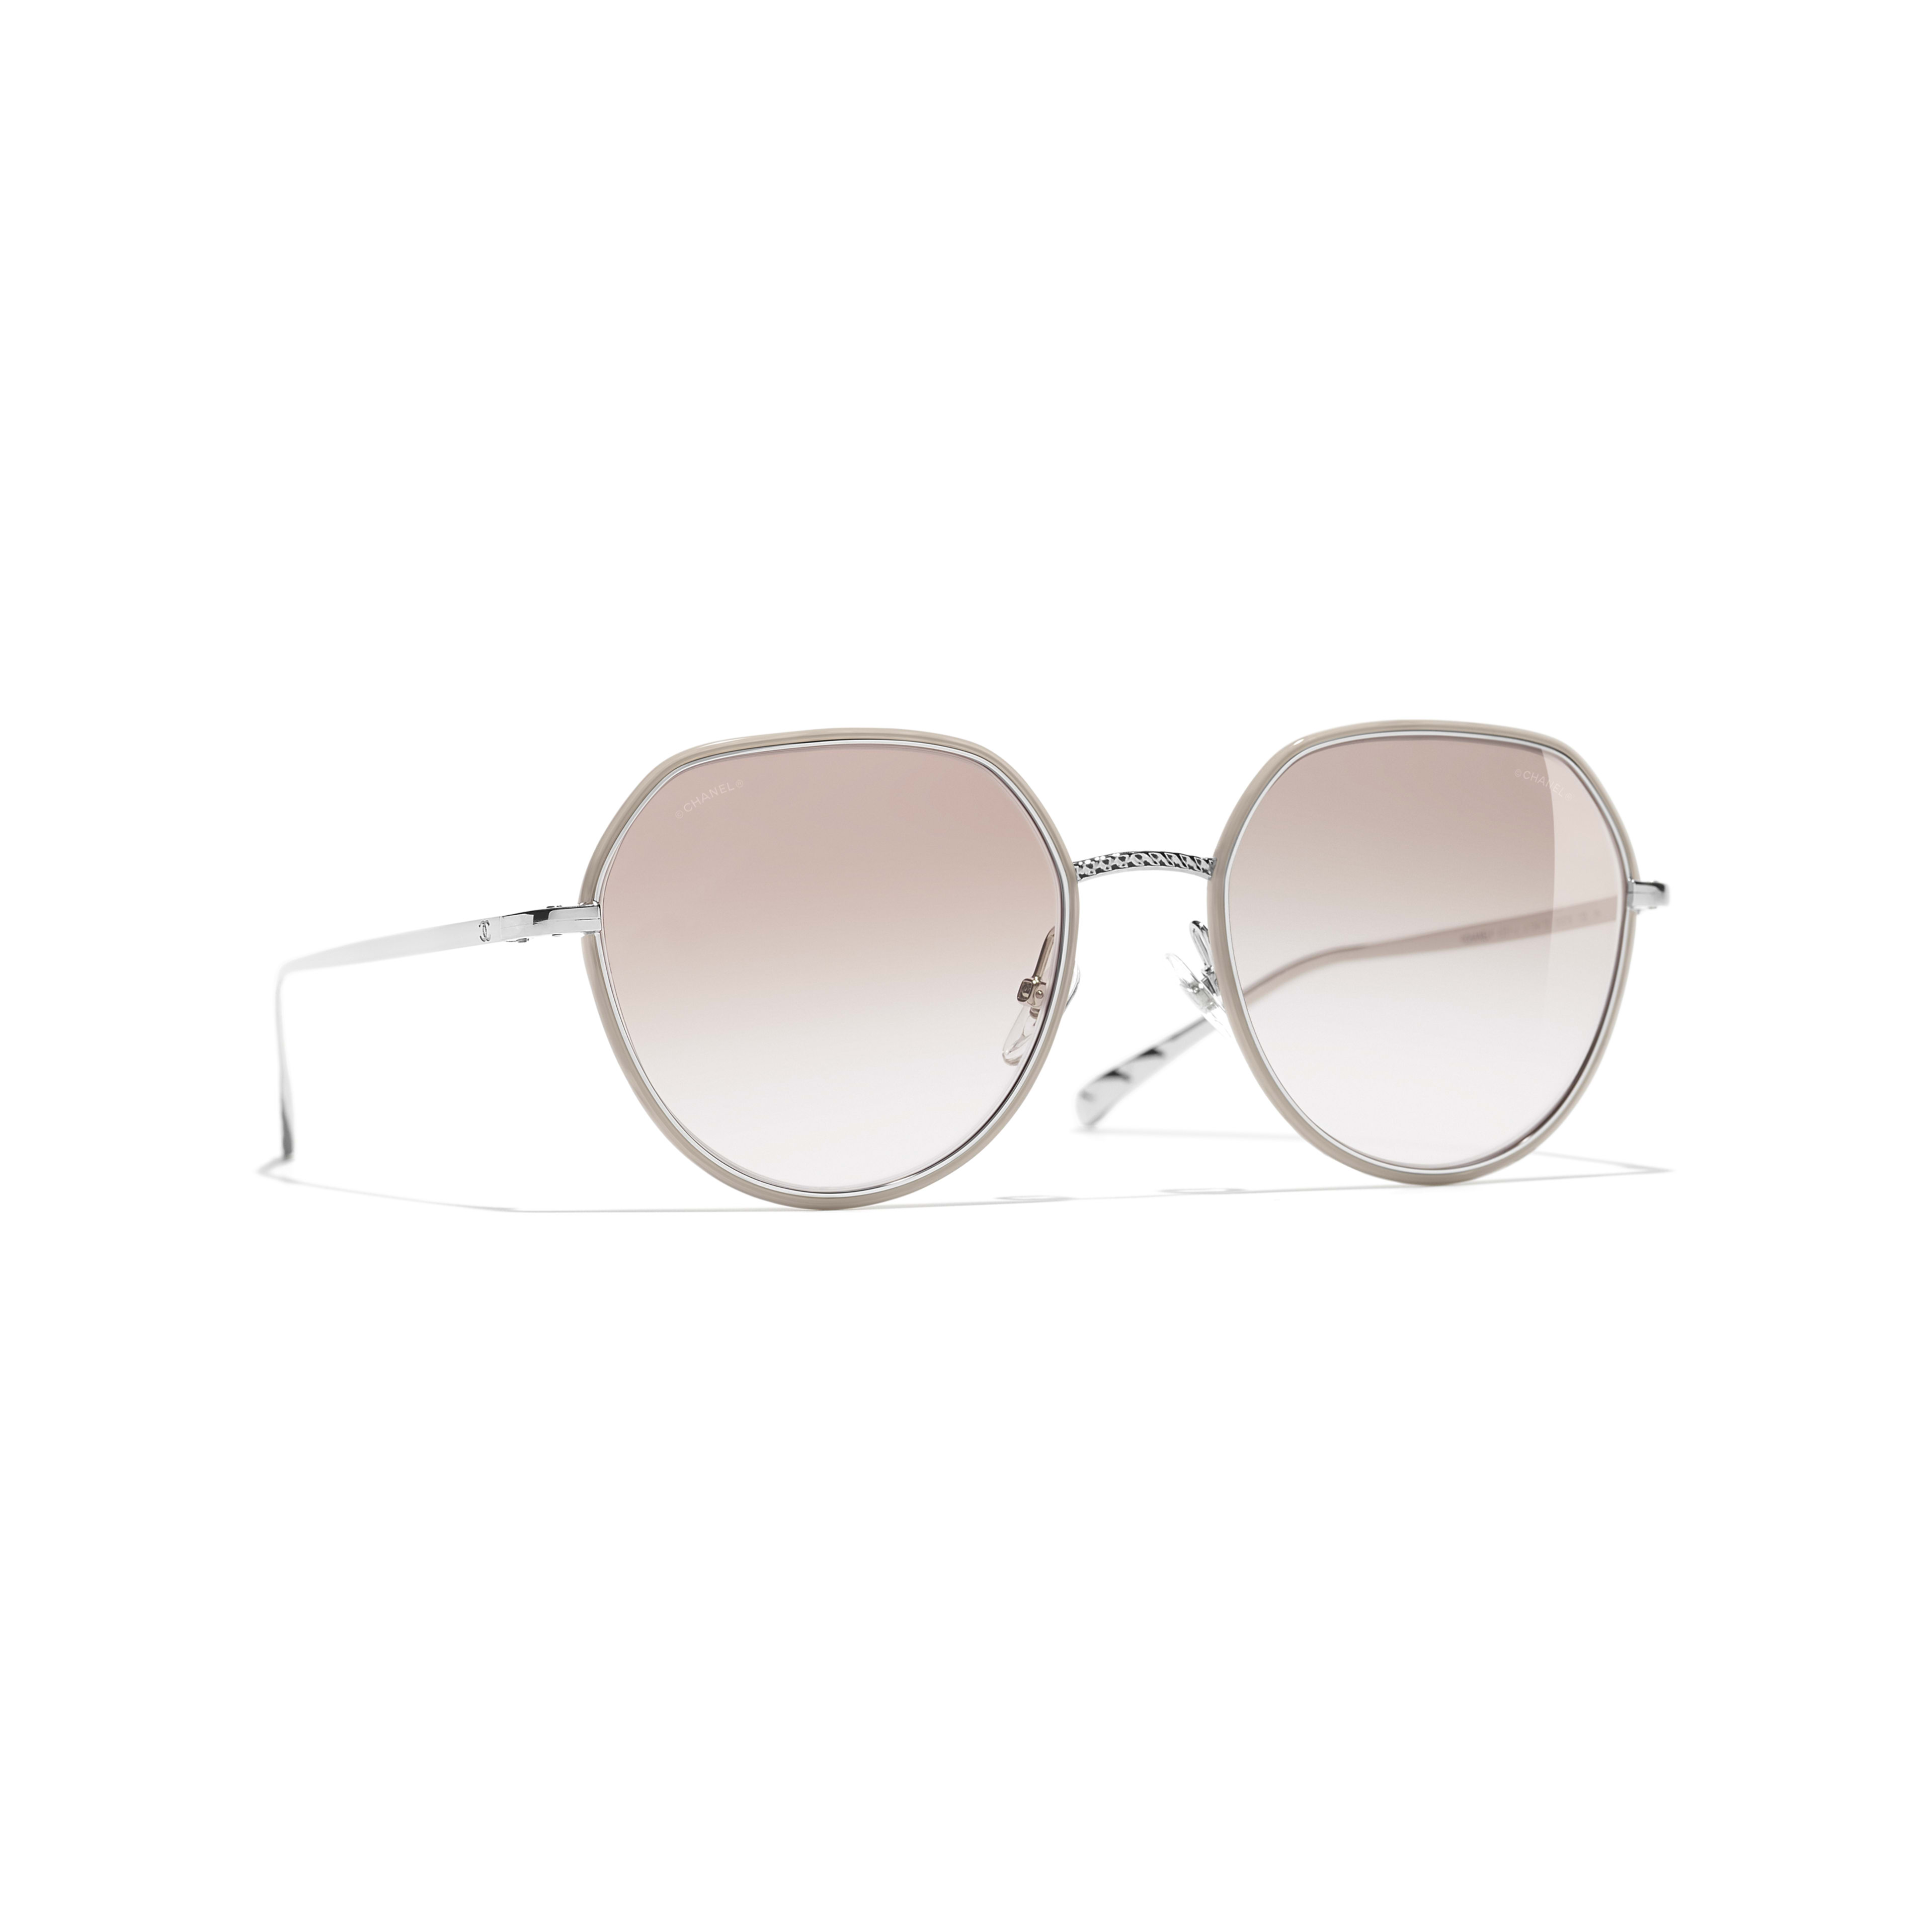 Round Sunglasses - Silver & Beige - Metal - CHANEL - Default view - see standard sized version